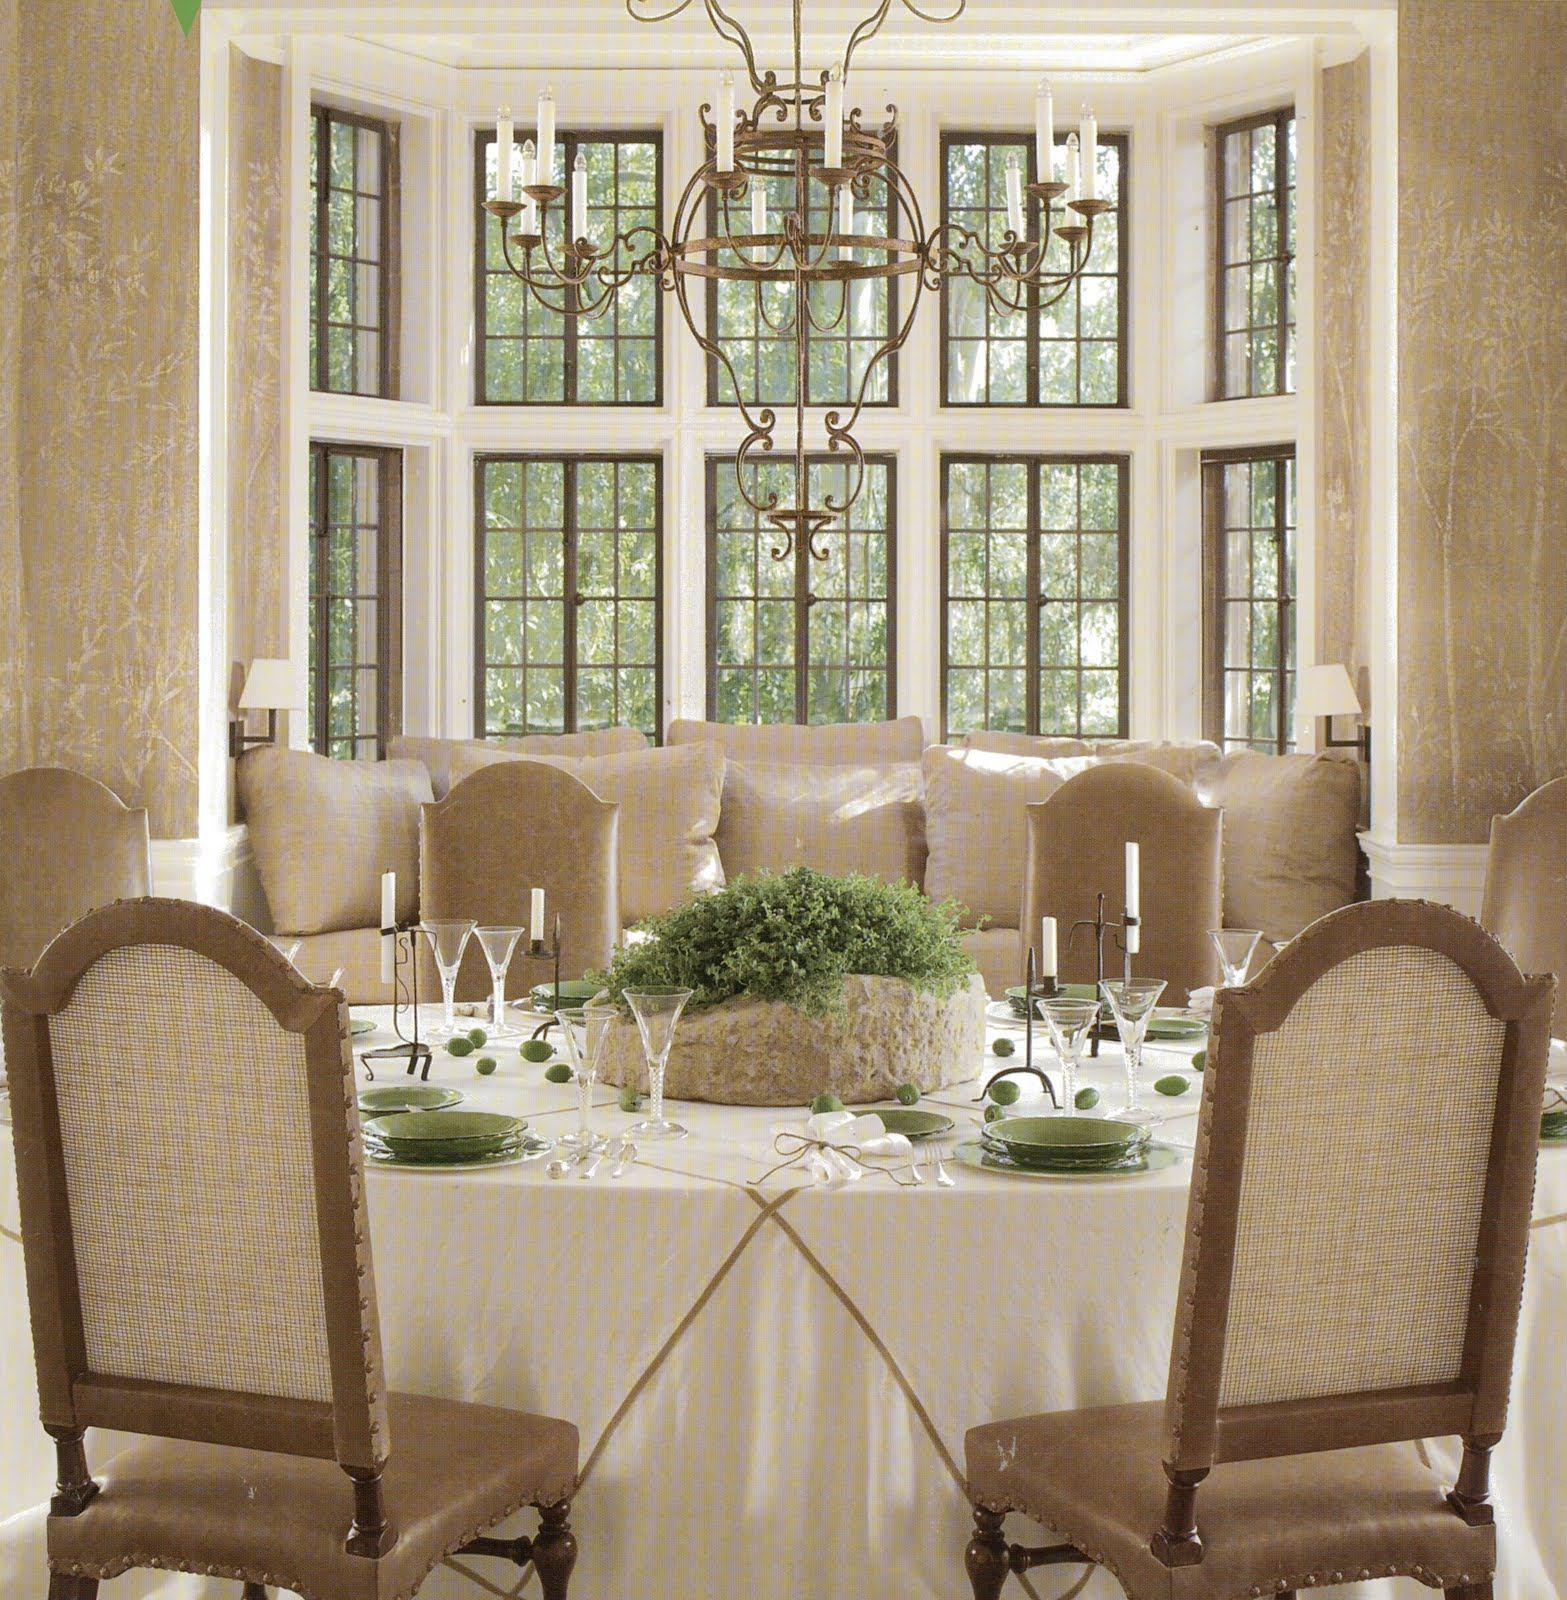 P s i love this ideas for dining room for Dining room windows